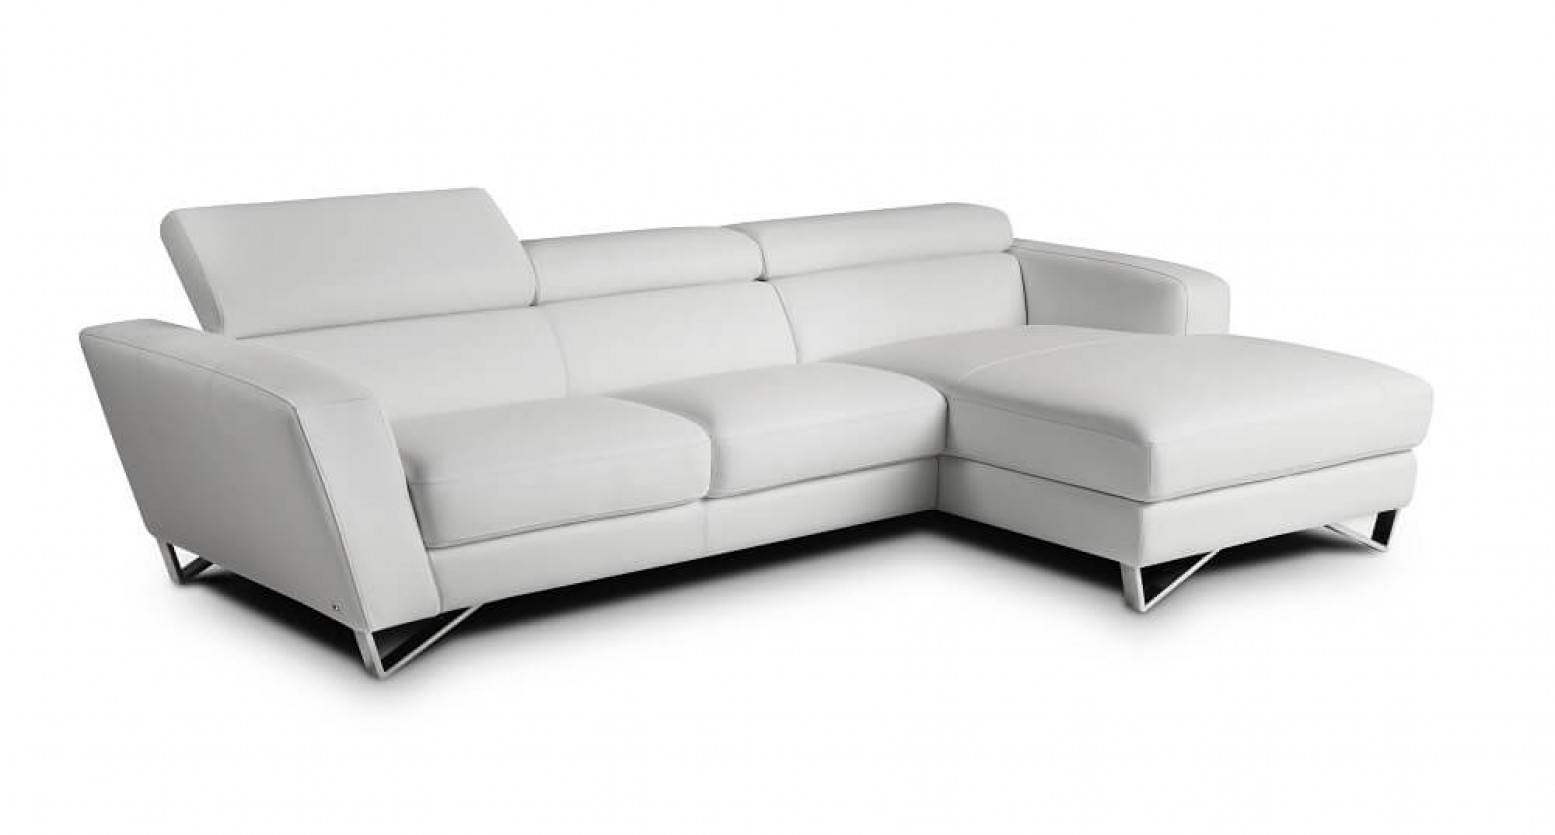 Sparta Mini Italian Leather Sectional Grey White By J M Furniture Sohomod Com